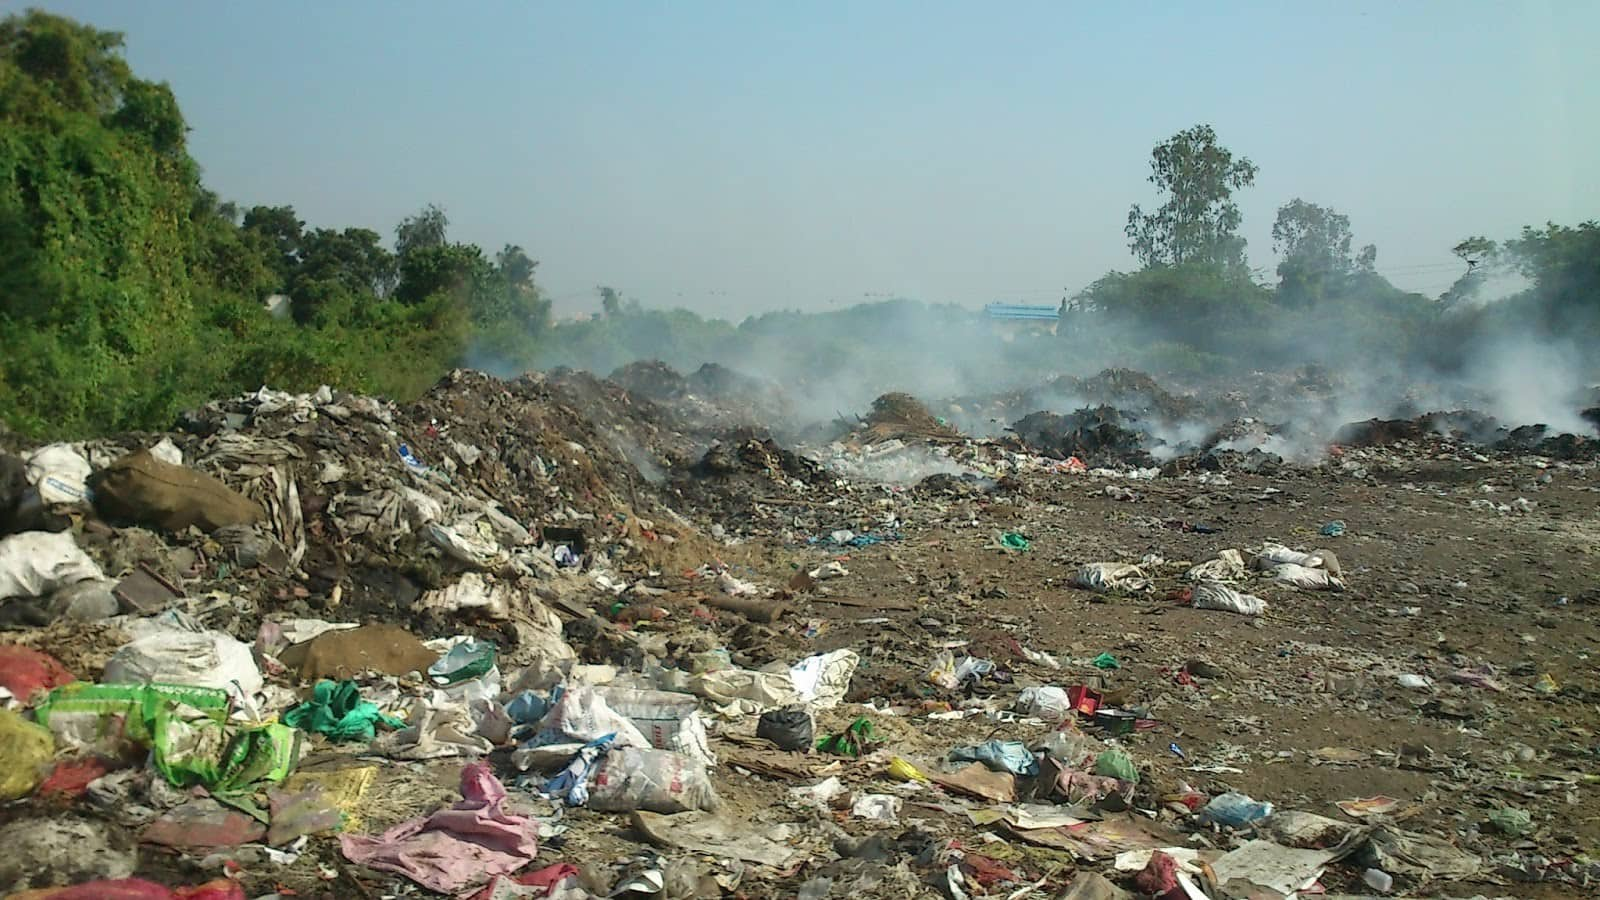 Types Of Environmental Pollution That We Must Be Careful